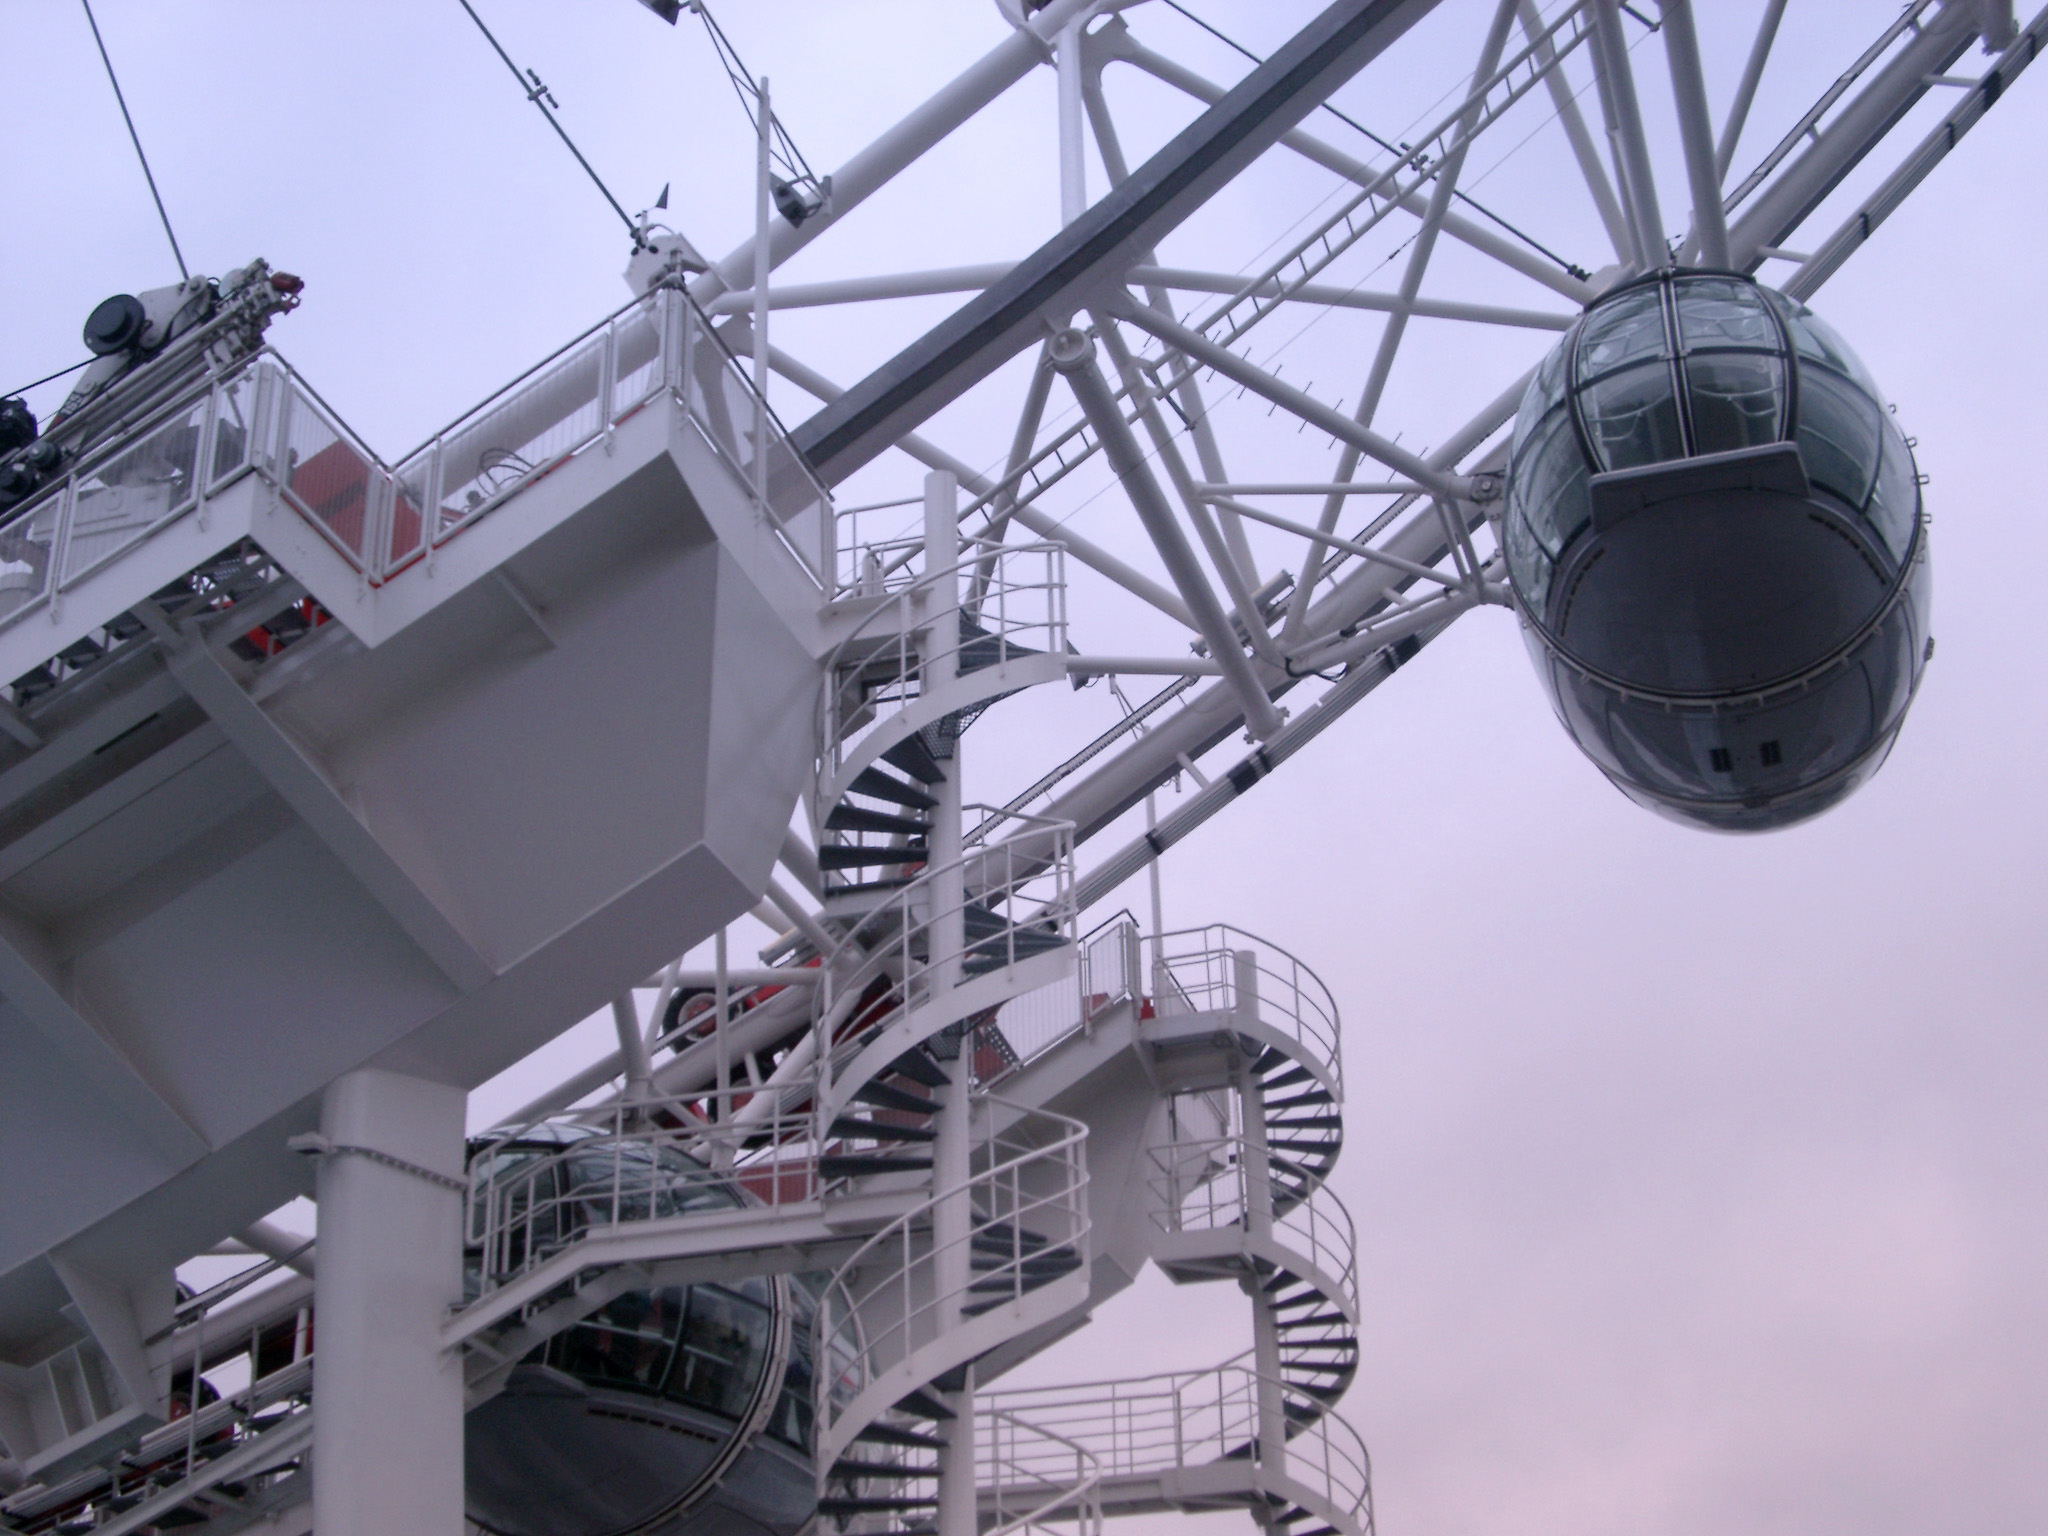 Detail of the London Eye ferris wheel, London showing the boarding platform and ovoid passenger capsule for viewing the topography of the city